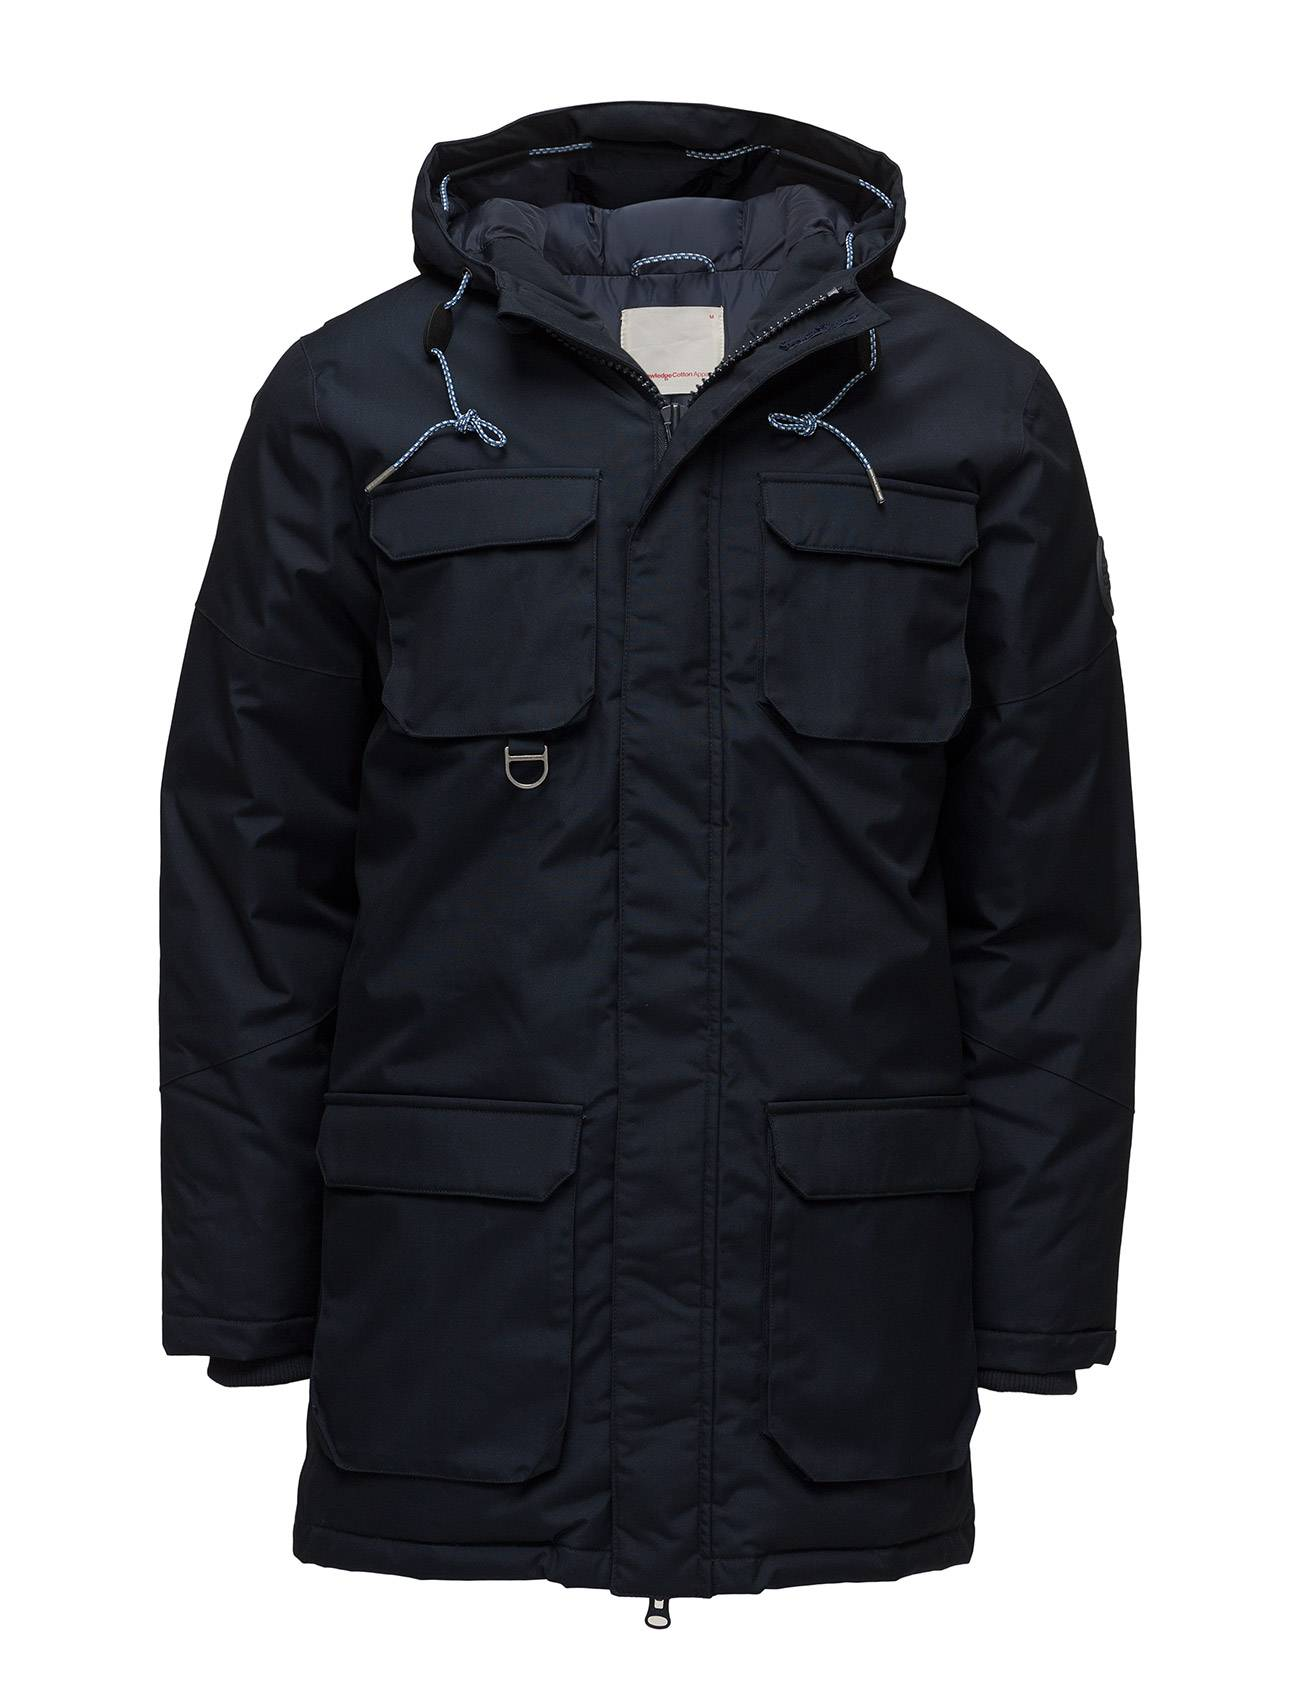 Knowledge Cotton Apparel Heavy Parka Jacket - Grs